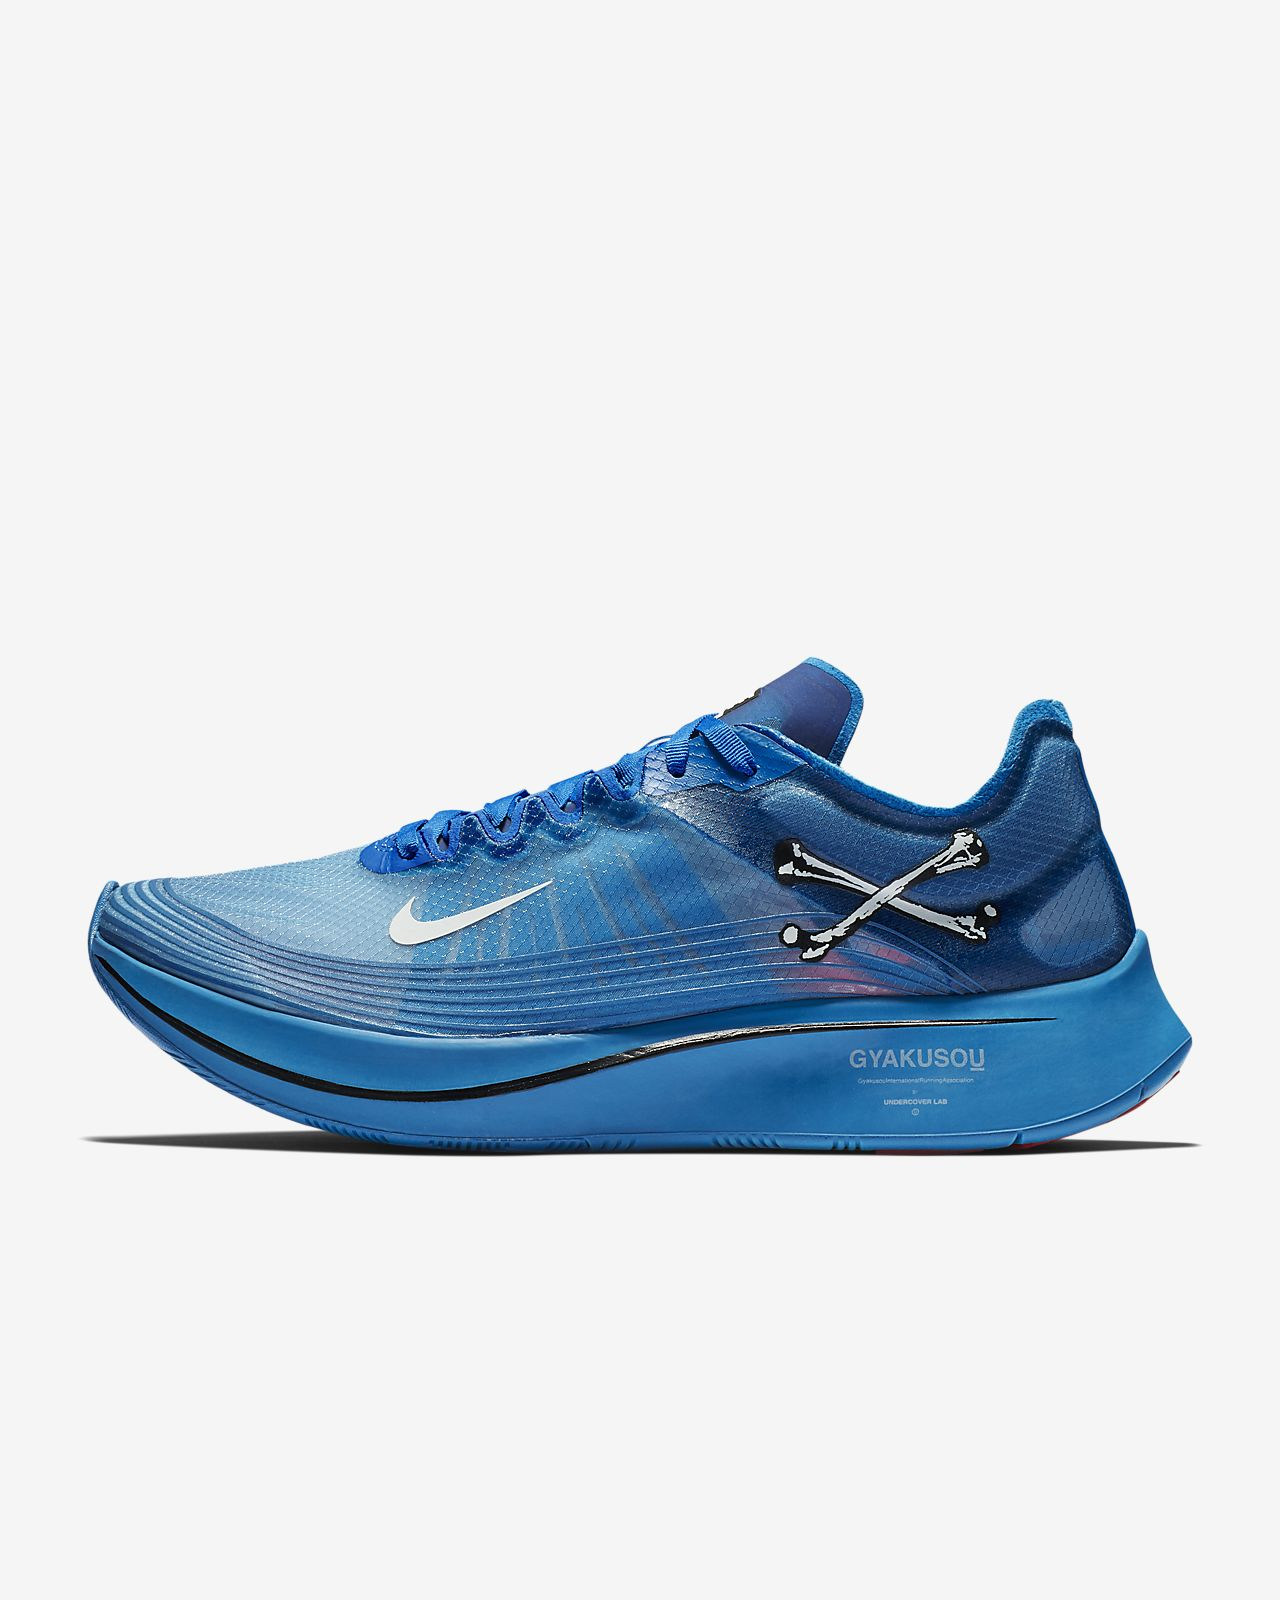 Nike x Gyakusou Zoom Fly Running Shoe